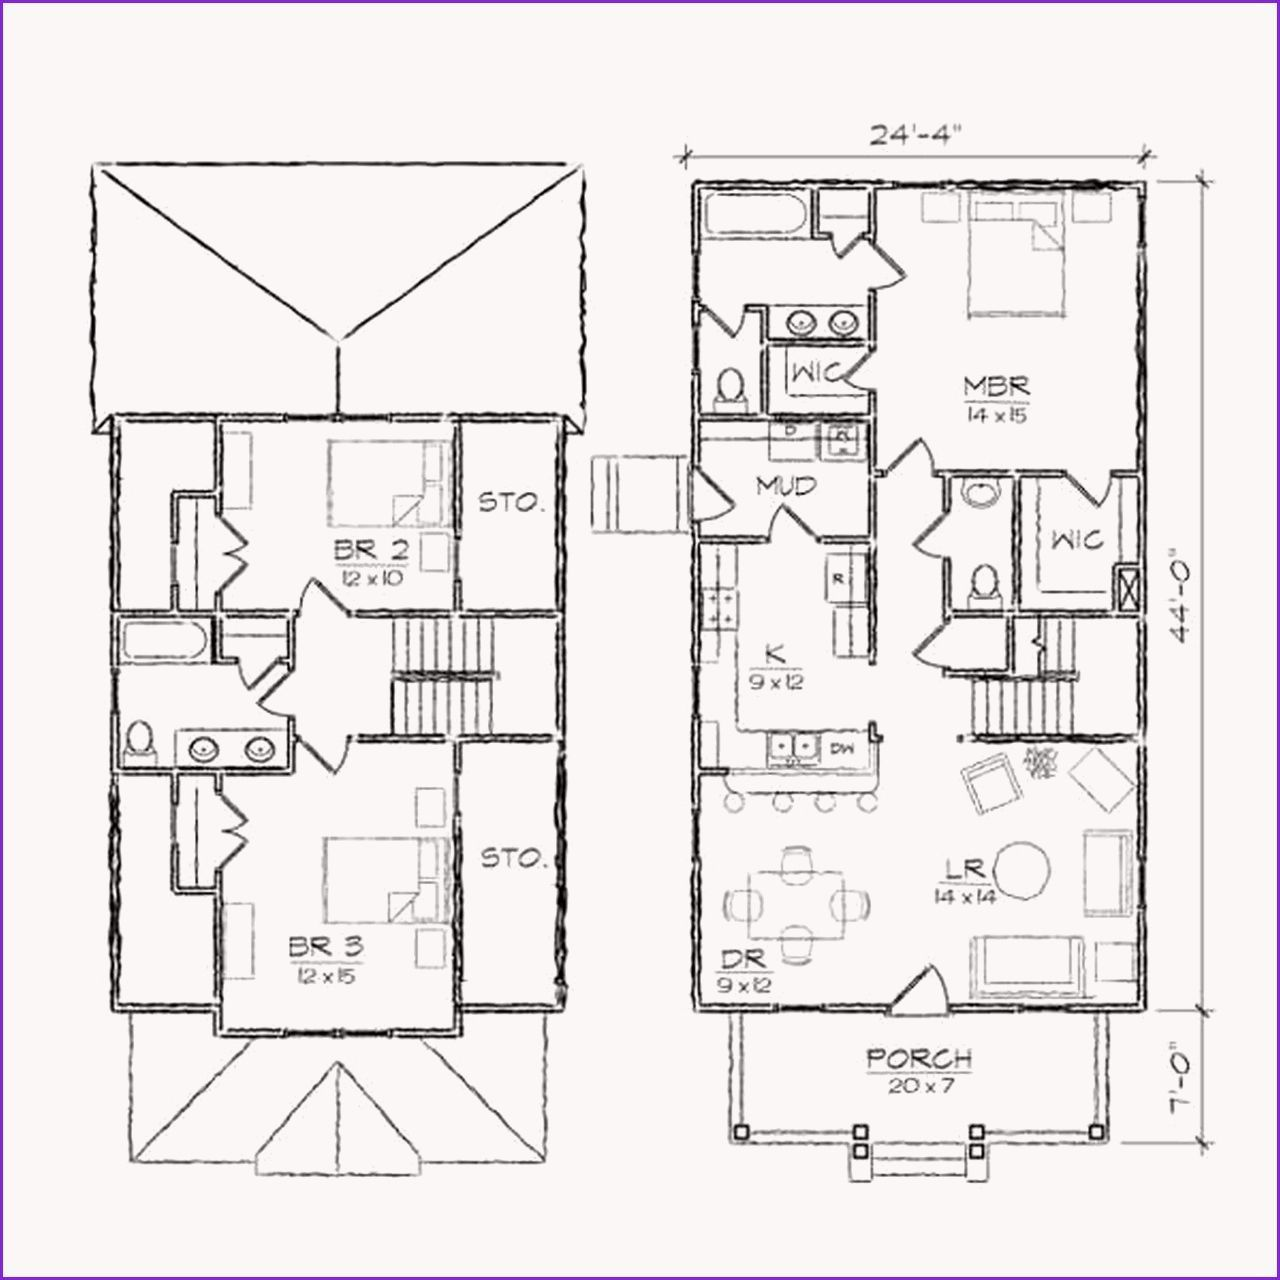 Awesome House Plans Under 2000 Sq Ft House Plans Under 2000 Sq Ft Awesome House Plans Under 2000 In 2020 Row House Design Small Modern House Plans Floor Plan Design